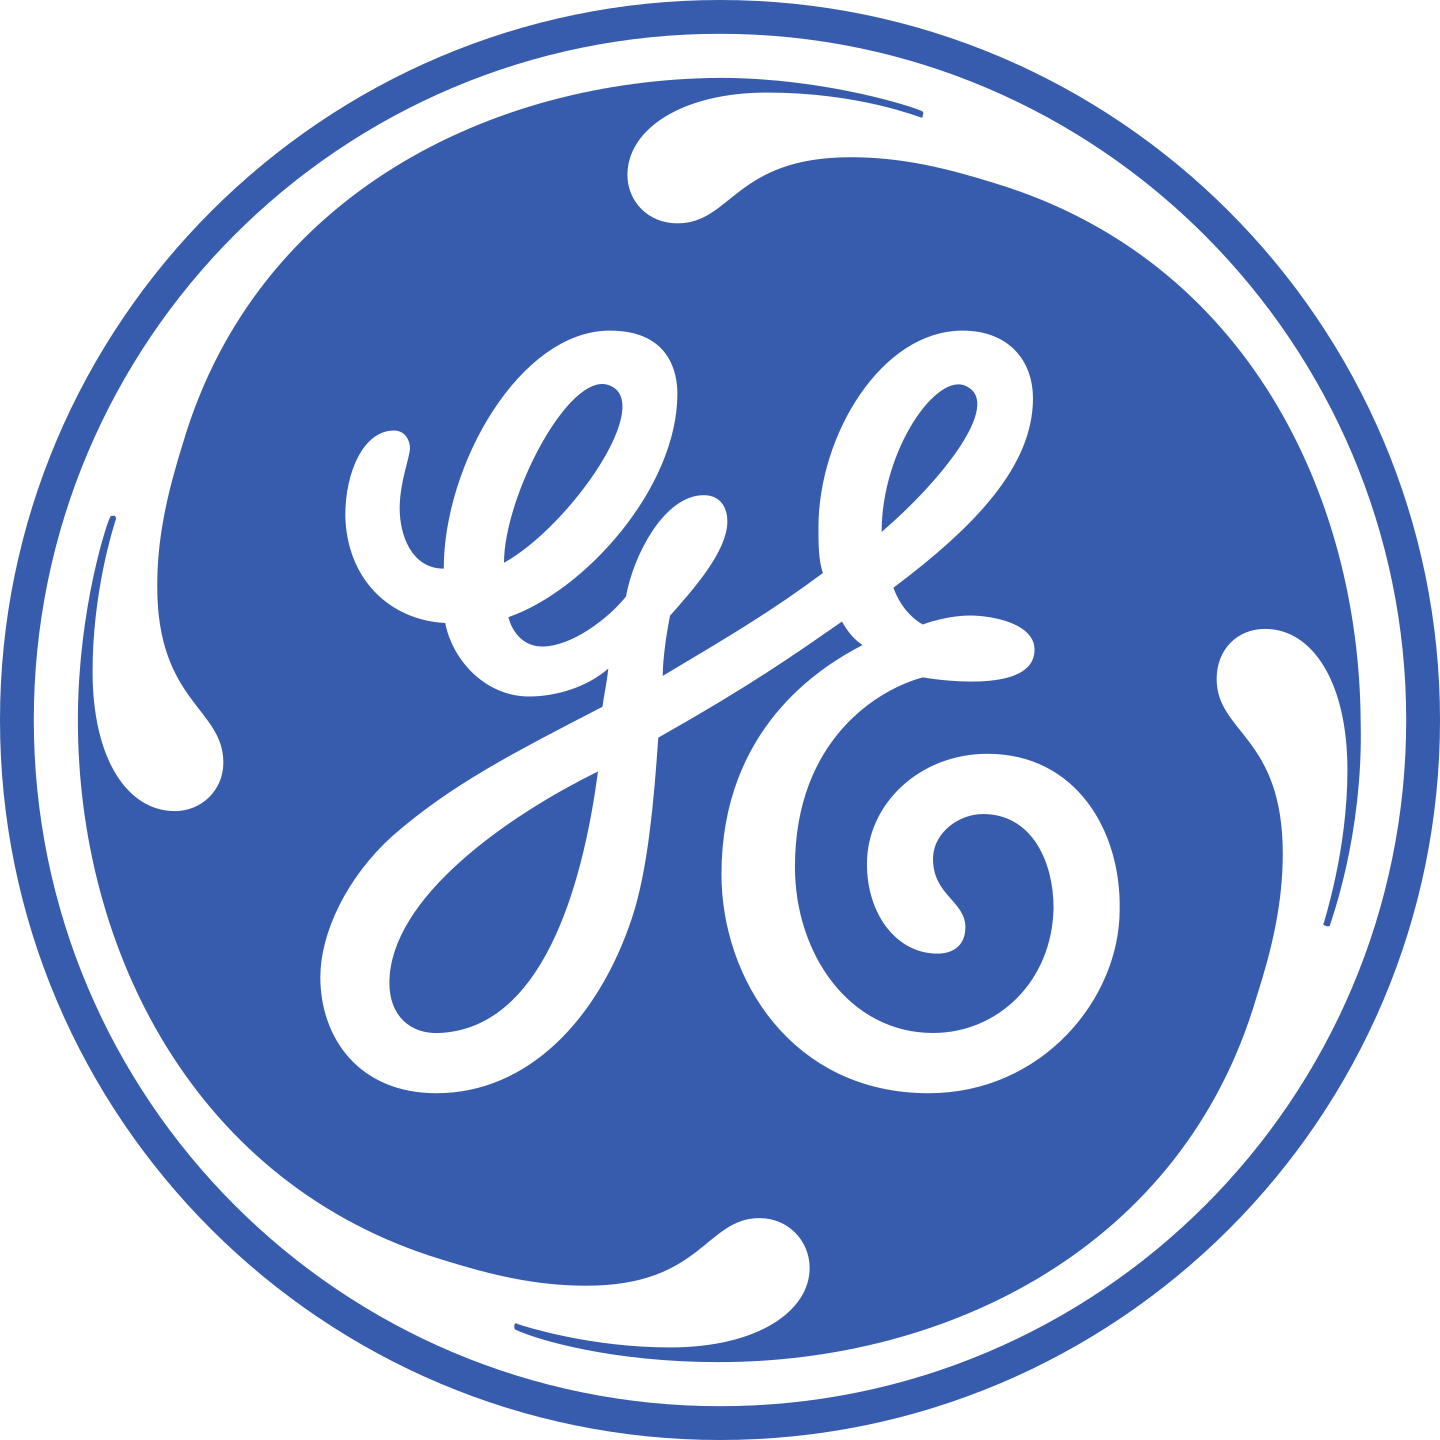 ge general electric logo 2 - GE – General Electric Logo